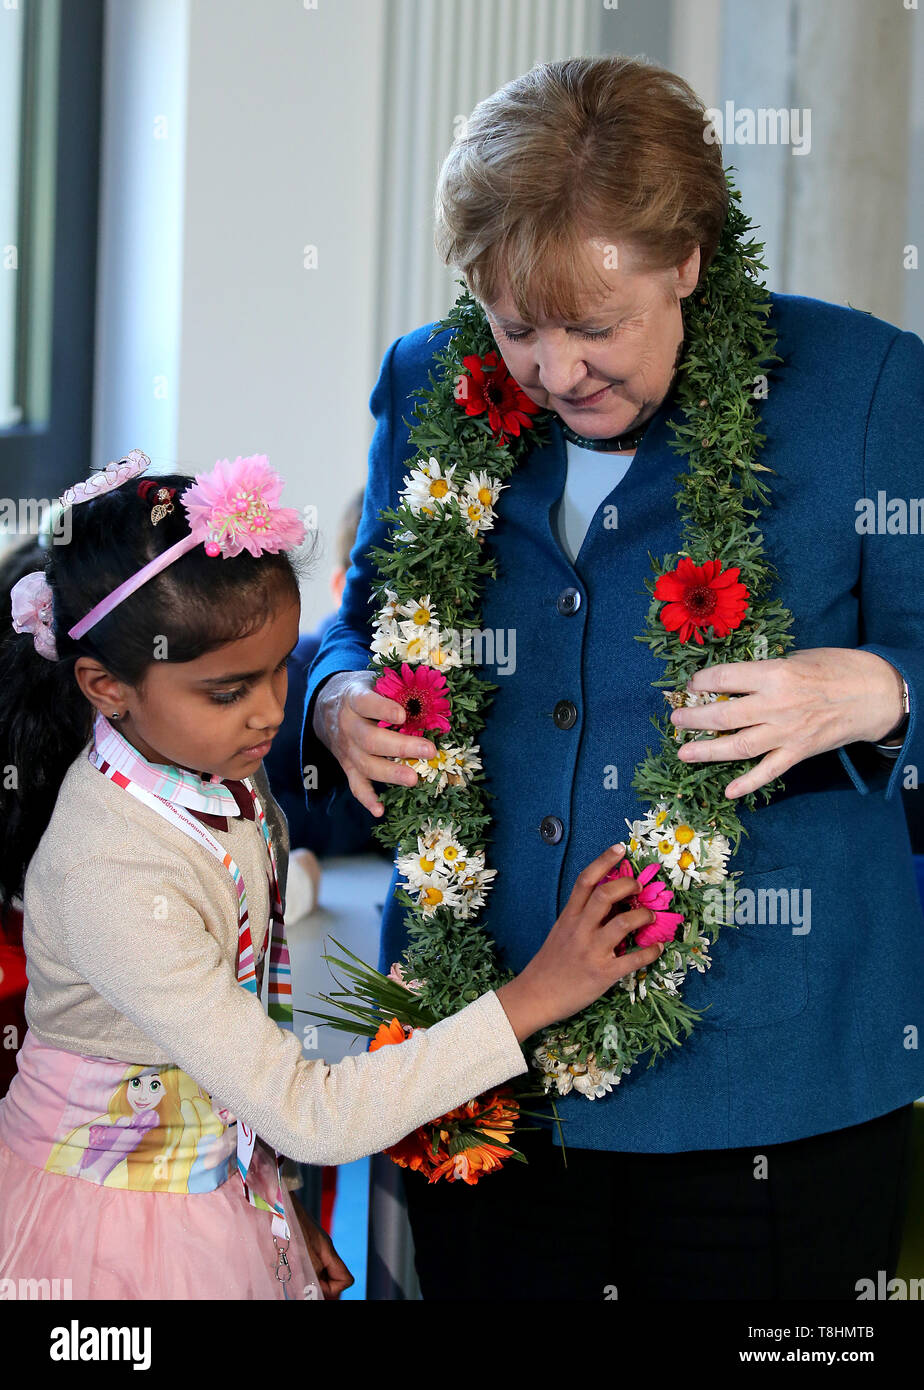 Wuppertal, Germany. 09th May, 2019. Federal Chancellor Angela Merkel (r, CDU) receives a wreath of flowers from the Sri Lankan student Sadurthika Mahenthdran (l) at the Junior University. The Wuppertal Junior University is a nationwide unique extracurricular educational and research institution for 4 to 20 year olds. Credit: Oliver Berg/dpa/Alamy Live News - Stock Image